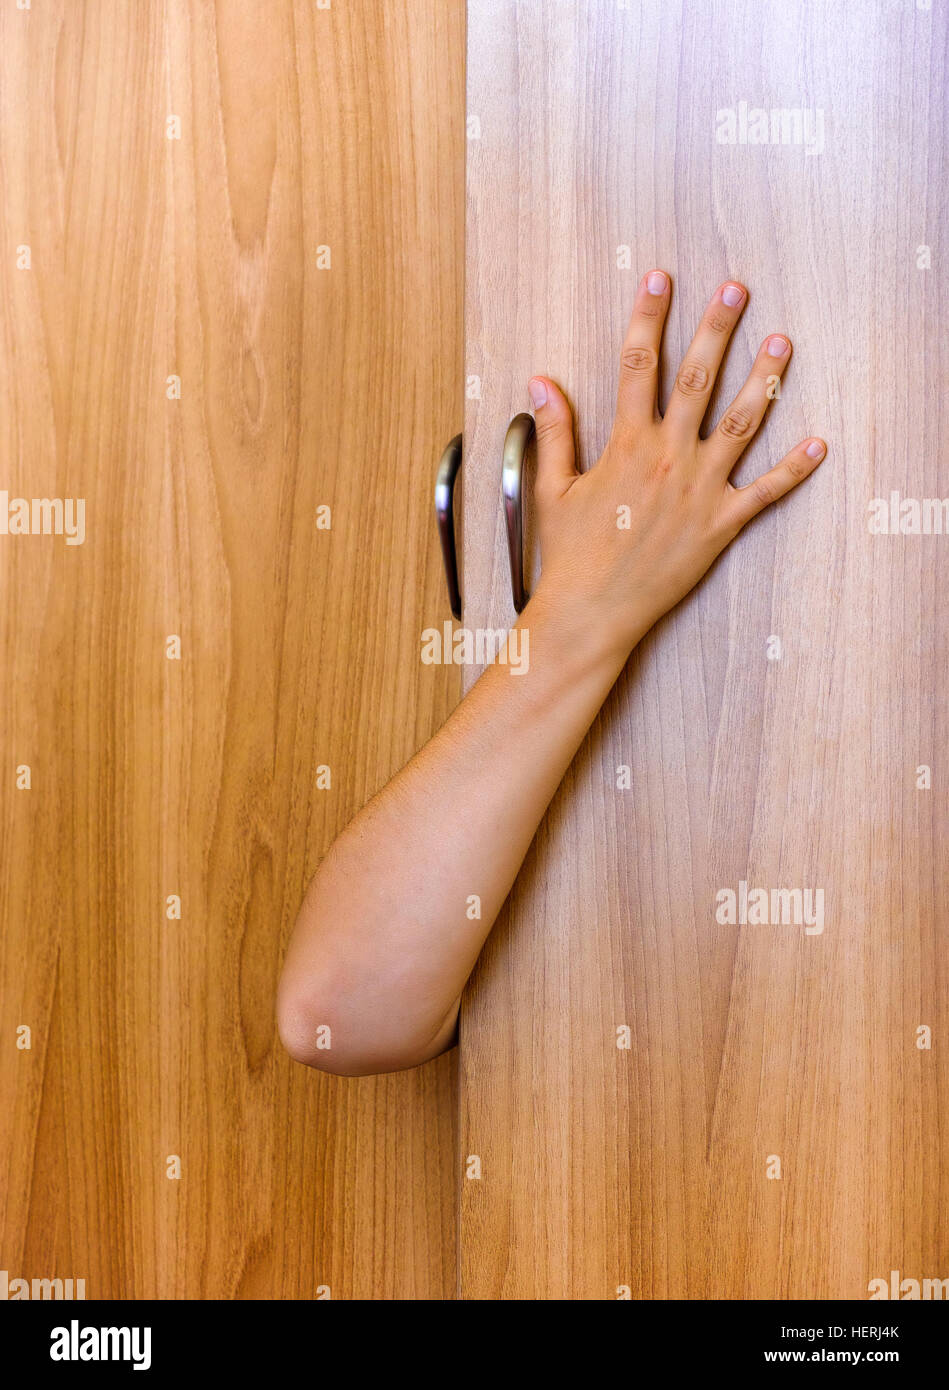 Person hand protruding from wardrobe door. Person inside of wardrobe. - Stock Image